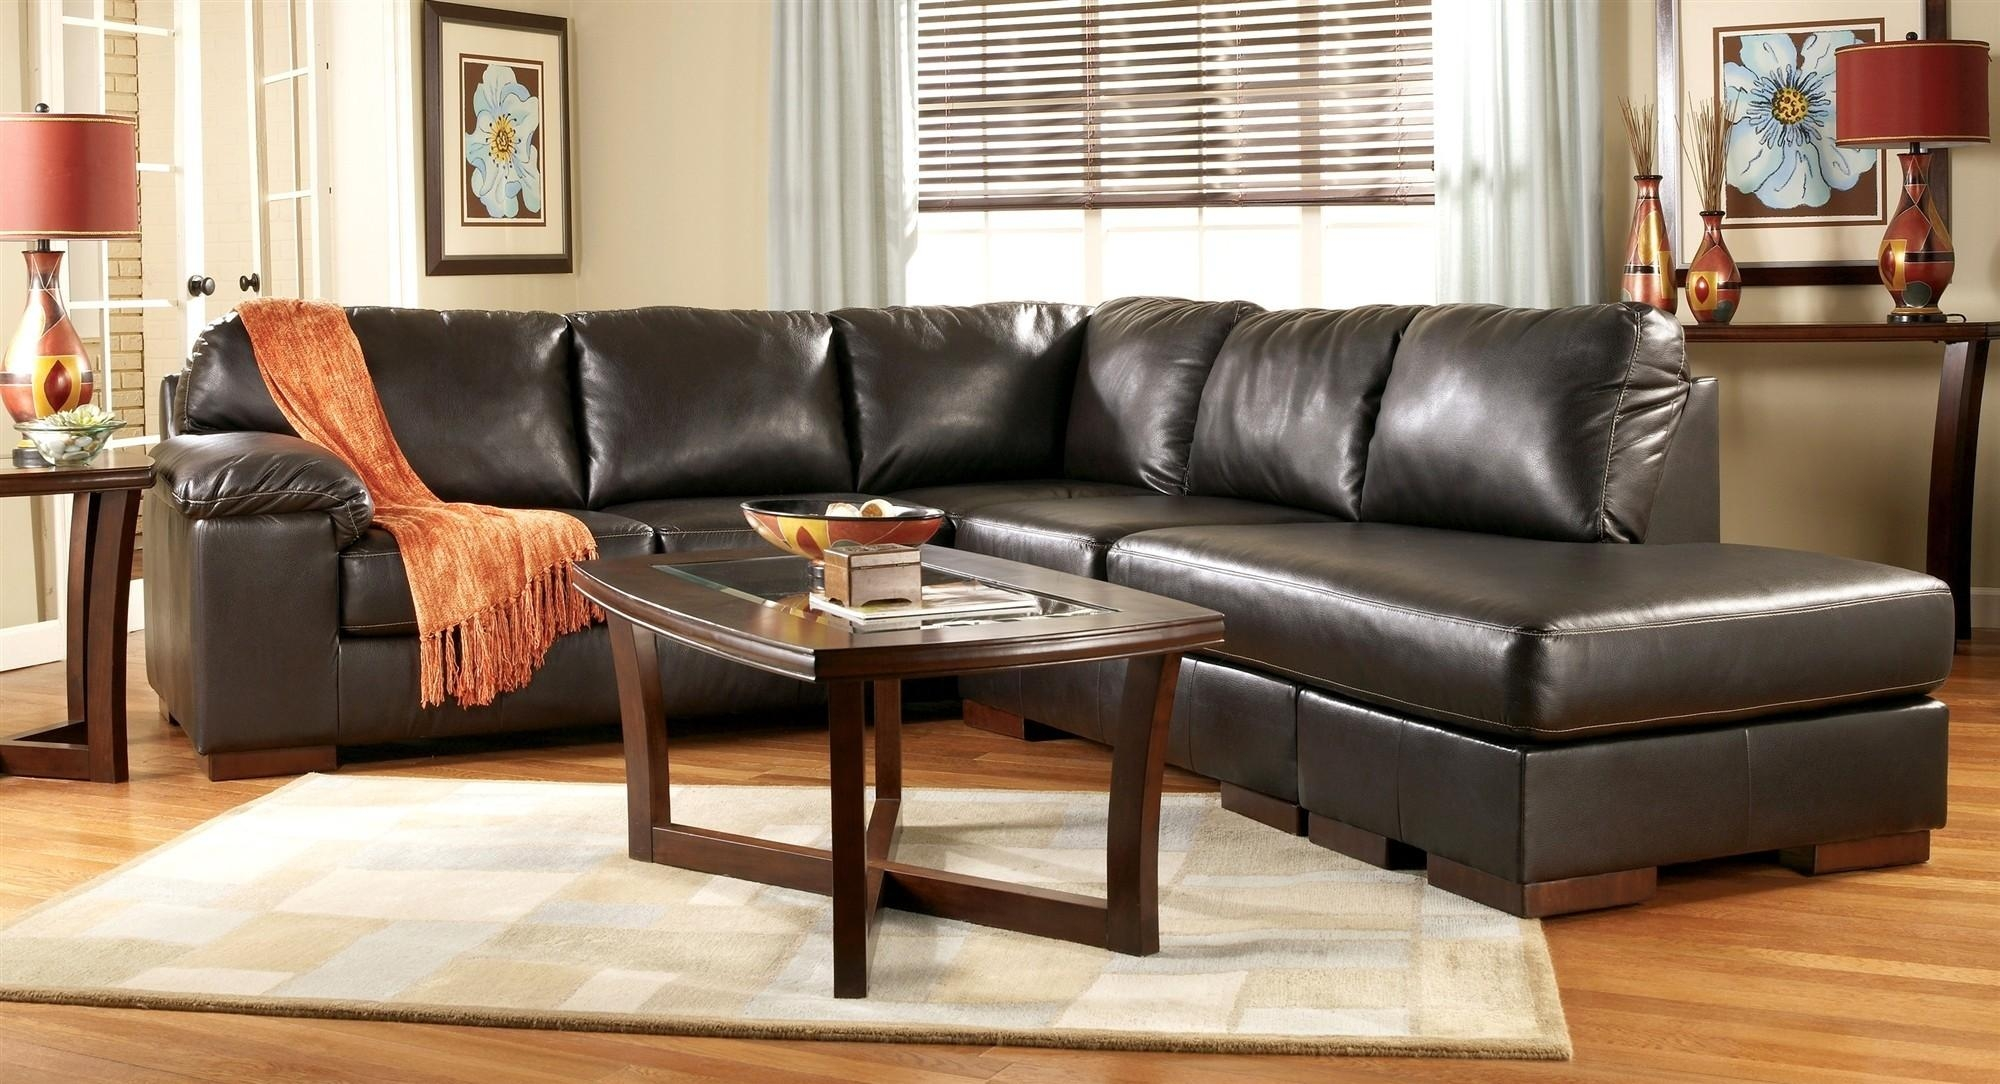 Living Room Design Ideas Brown Leather Sofa Lavita Home (View 17 of 20)